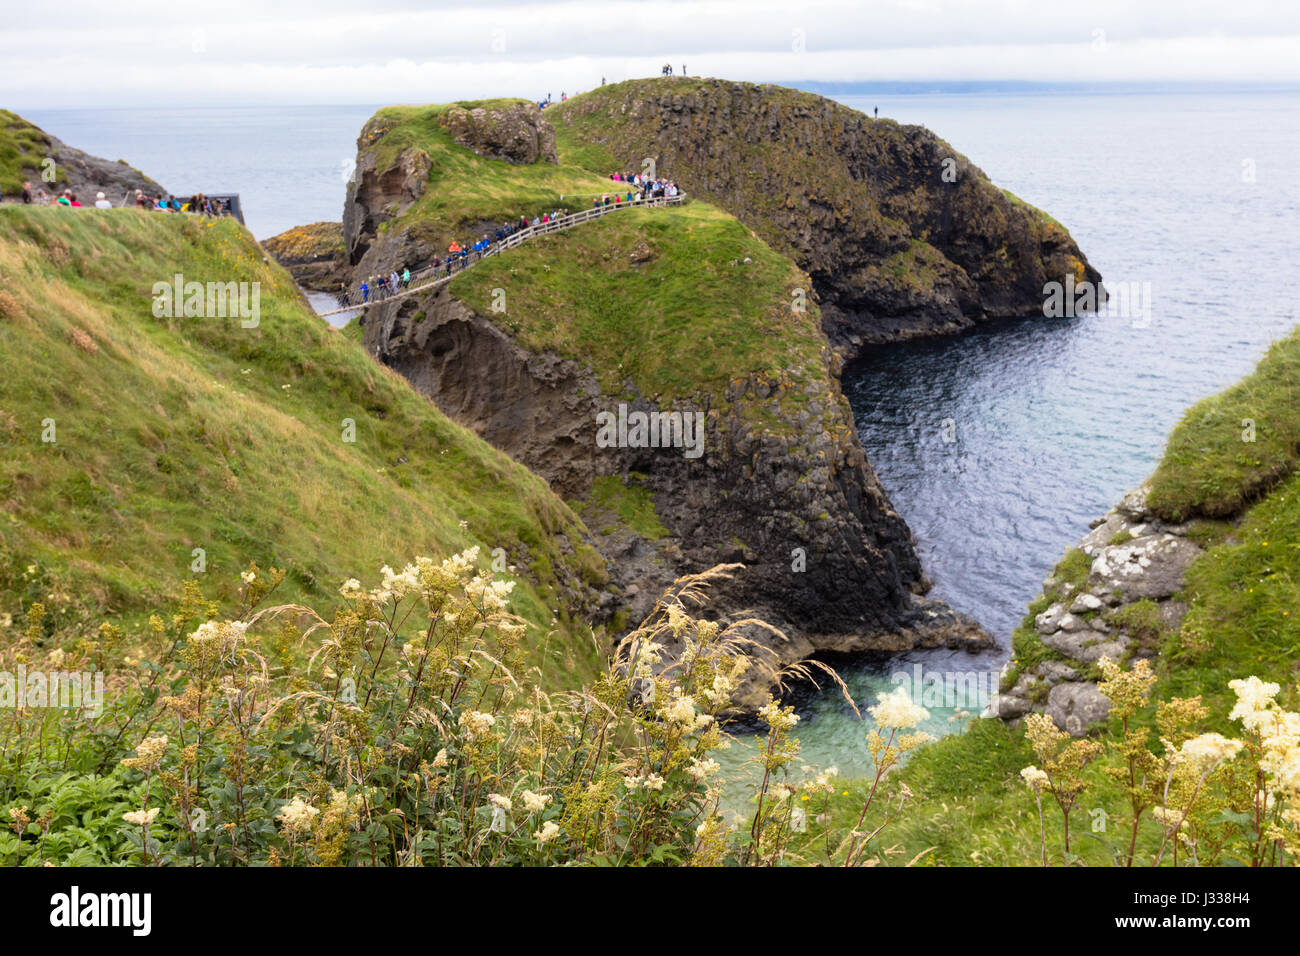 Carrick-a-Rede Rope Bridge is a  bridge near Ballintoy in County Antrim, Northern Ireland. The bridge links the - Stock Image